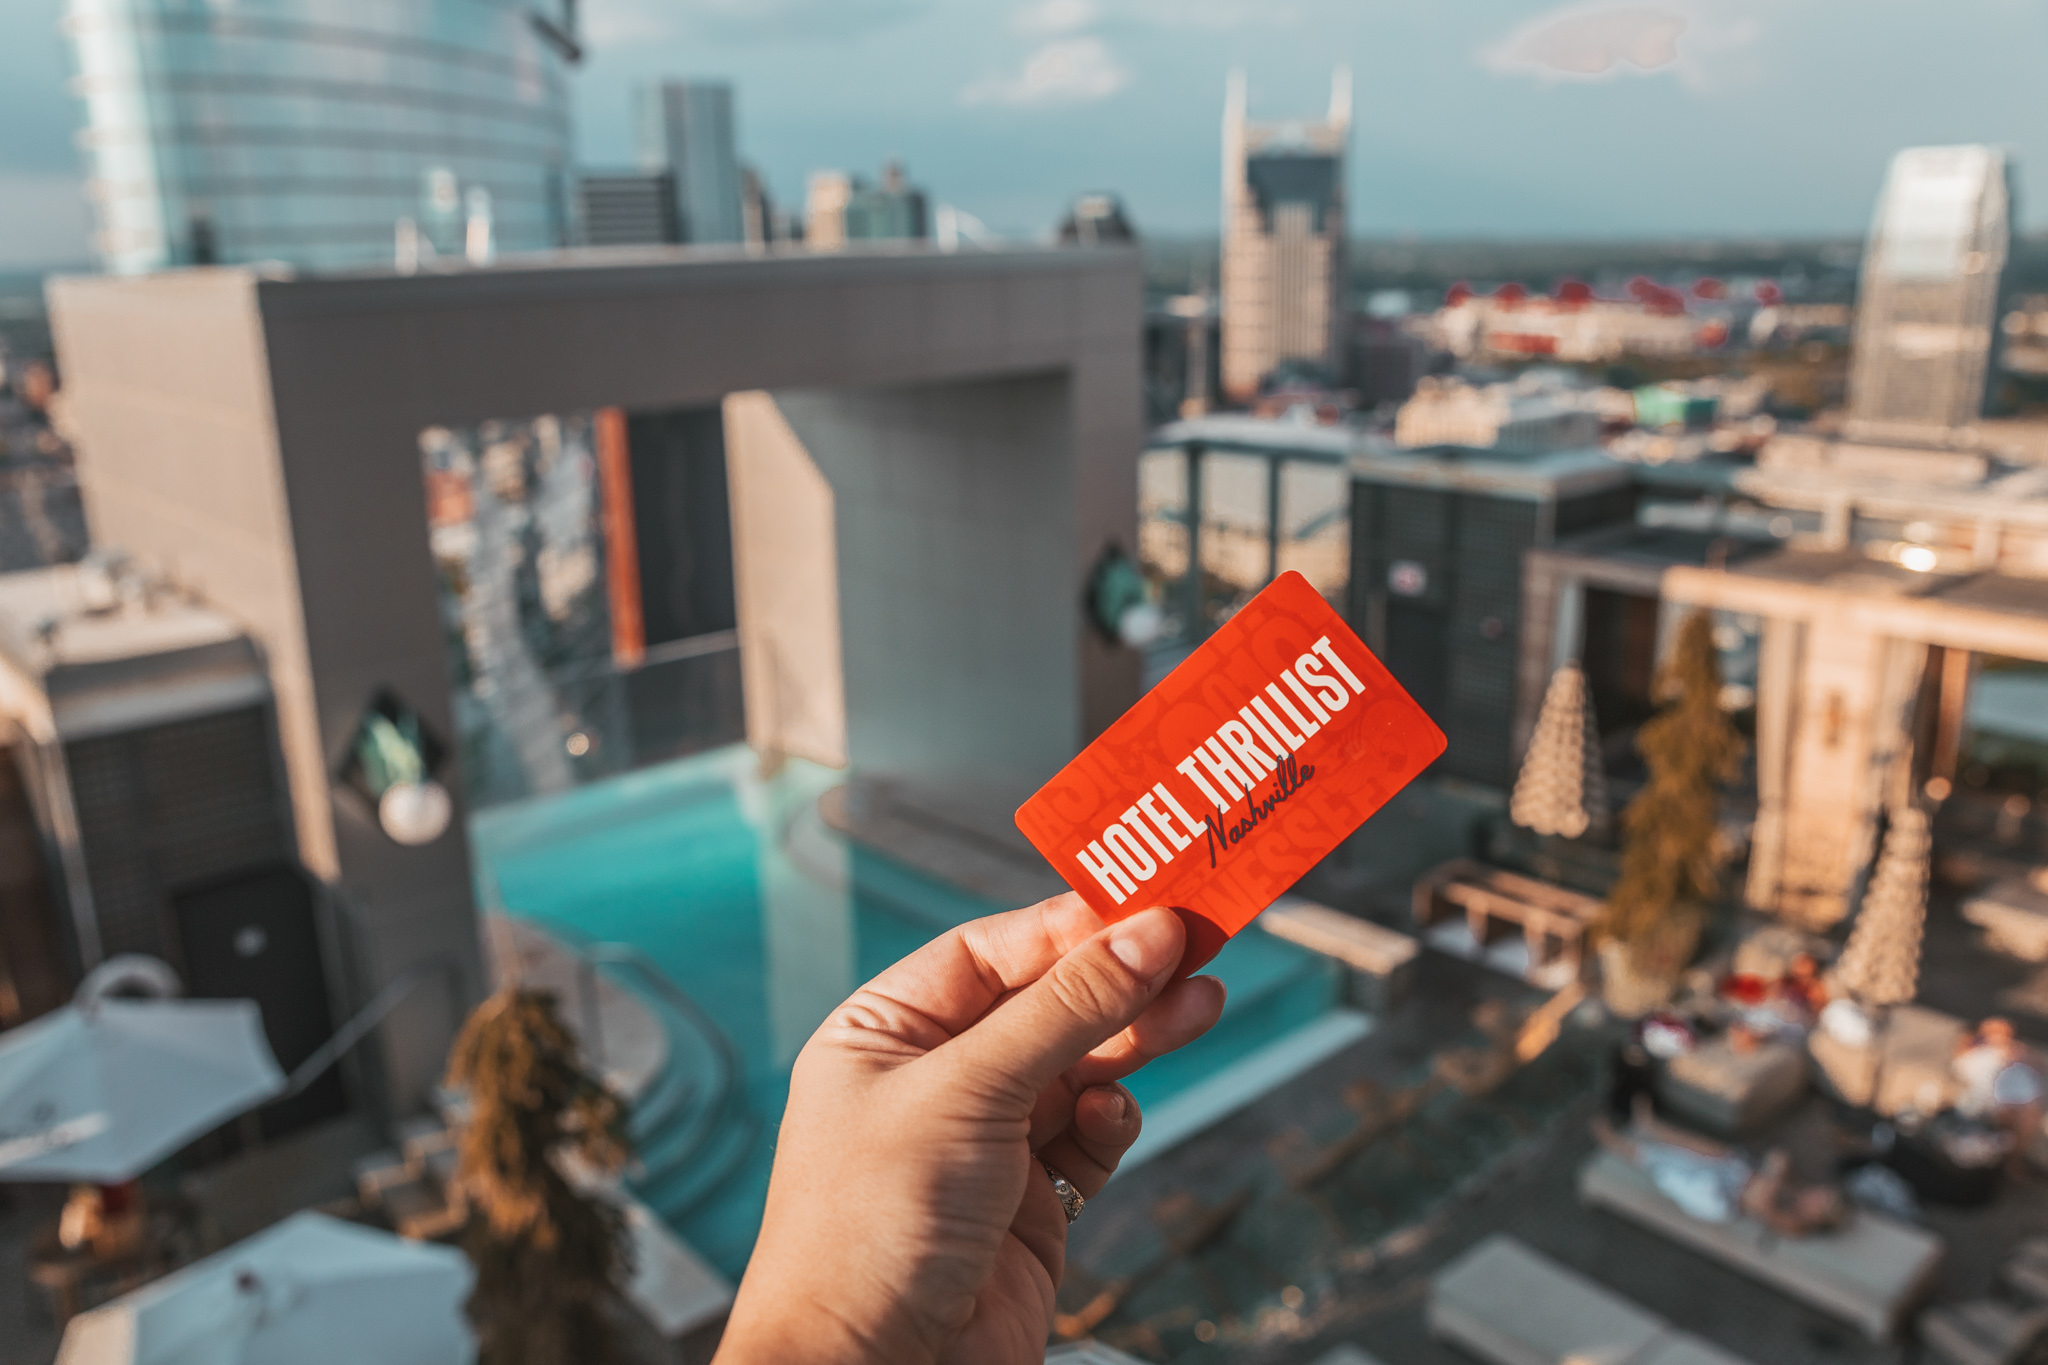 Hotel Thrillist at the Westin Nashville // A Weekend at Hotel Thrillist #readysetjetset